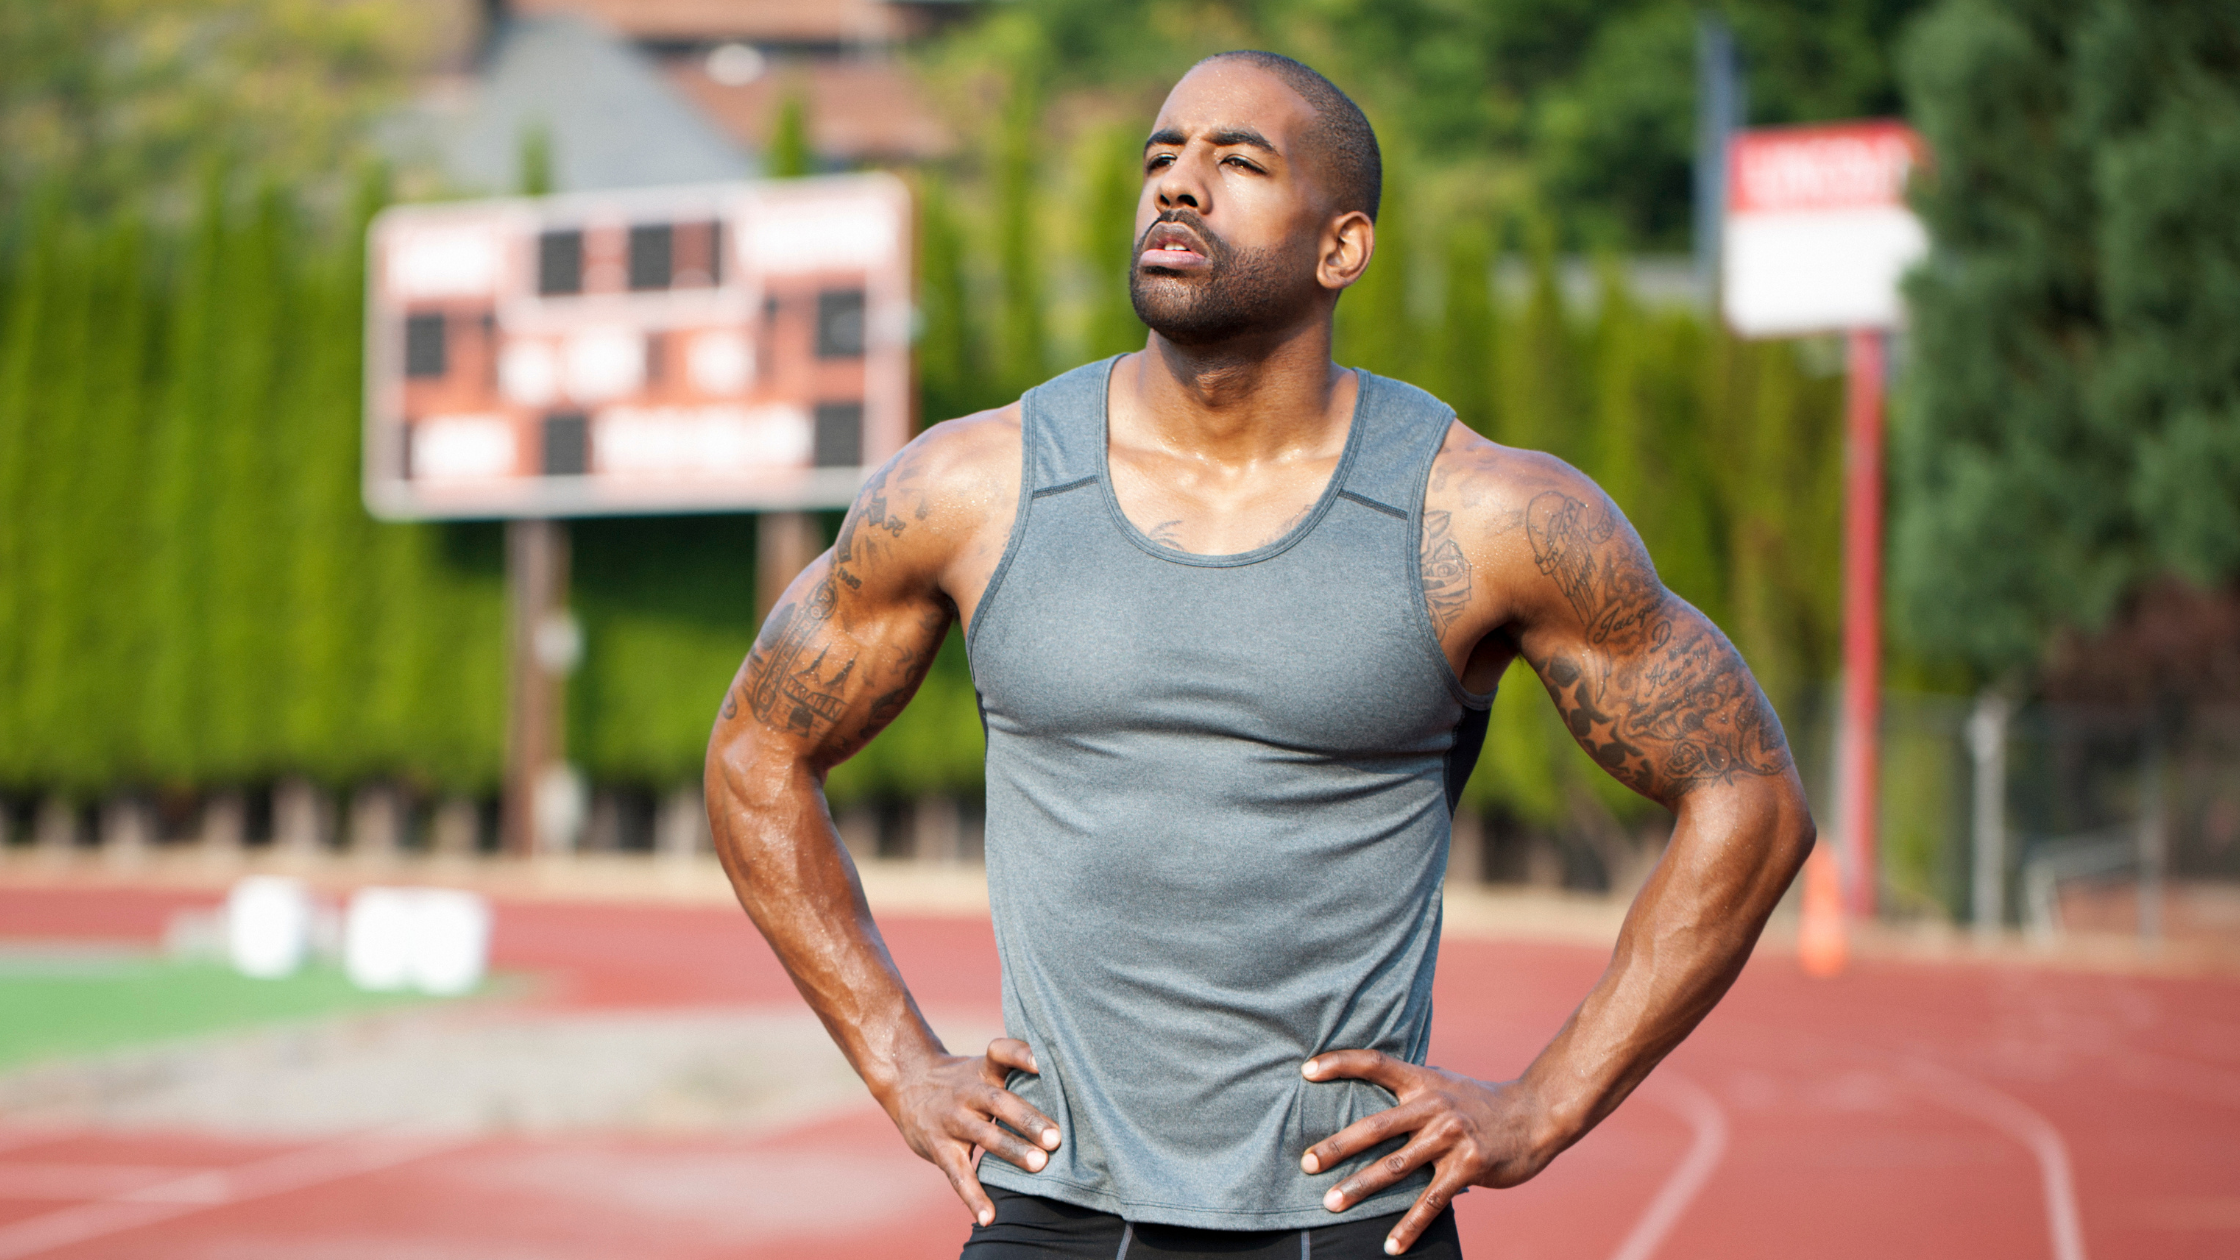 Health Philosophy: Physical Training has Limited Benefit